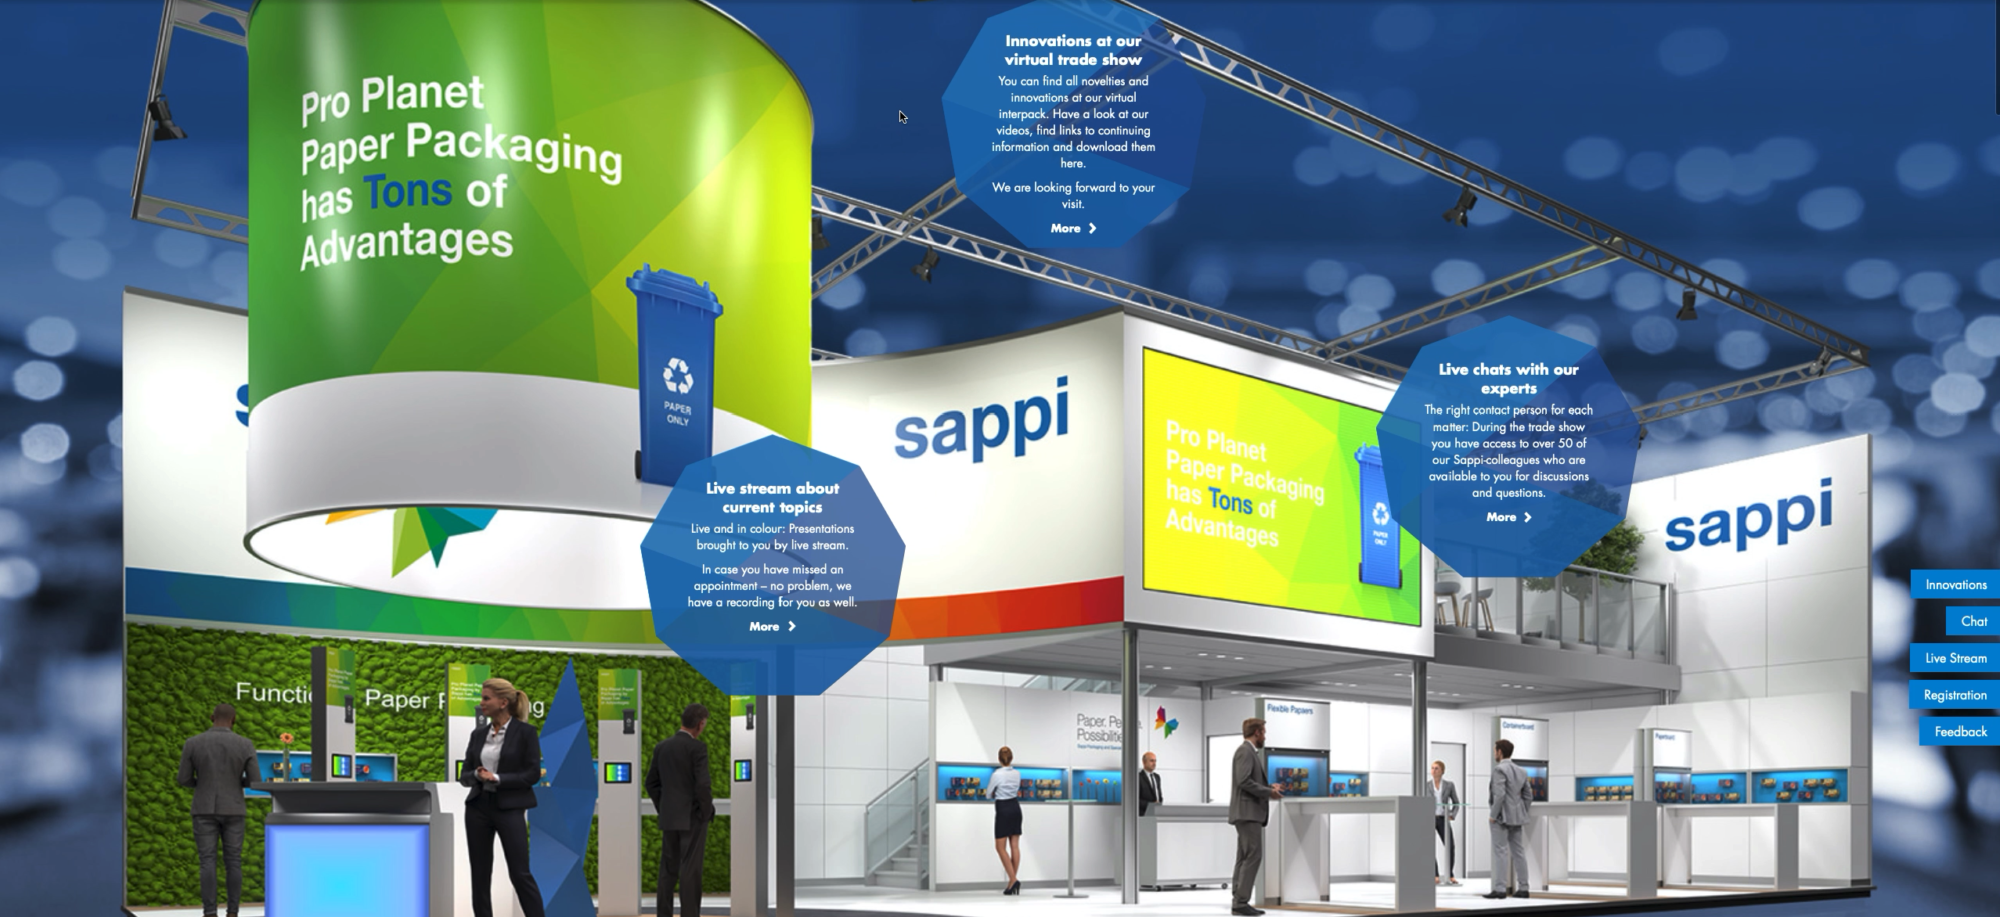 Digitale Marketing- und Vertriebsplattform Sappi